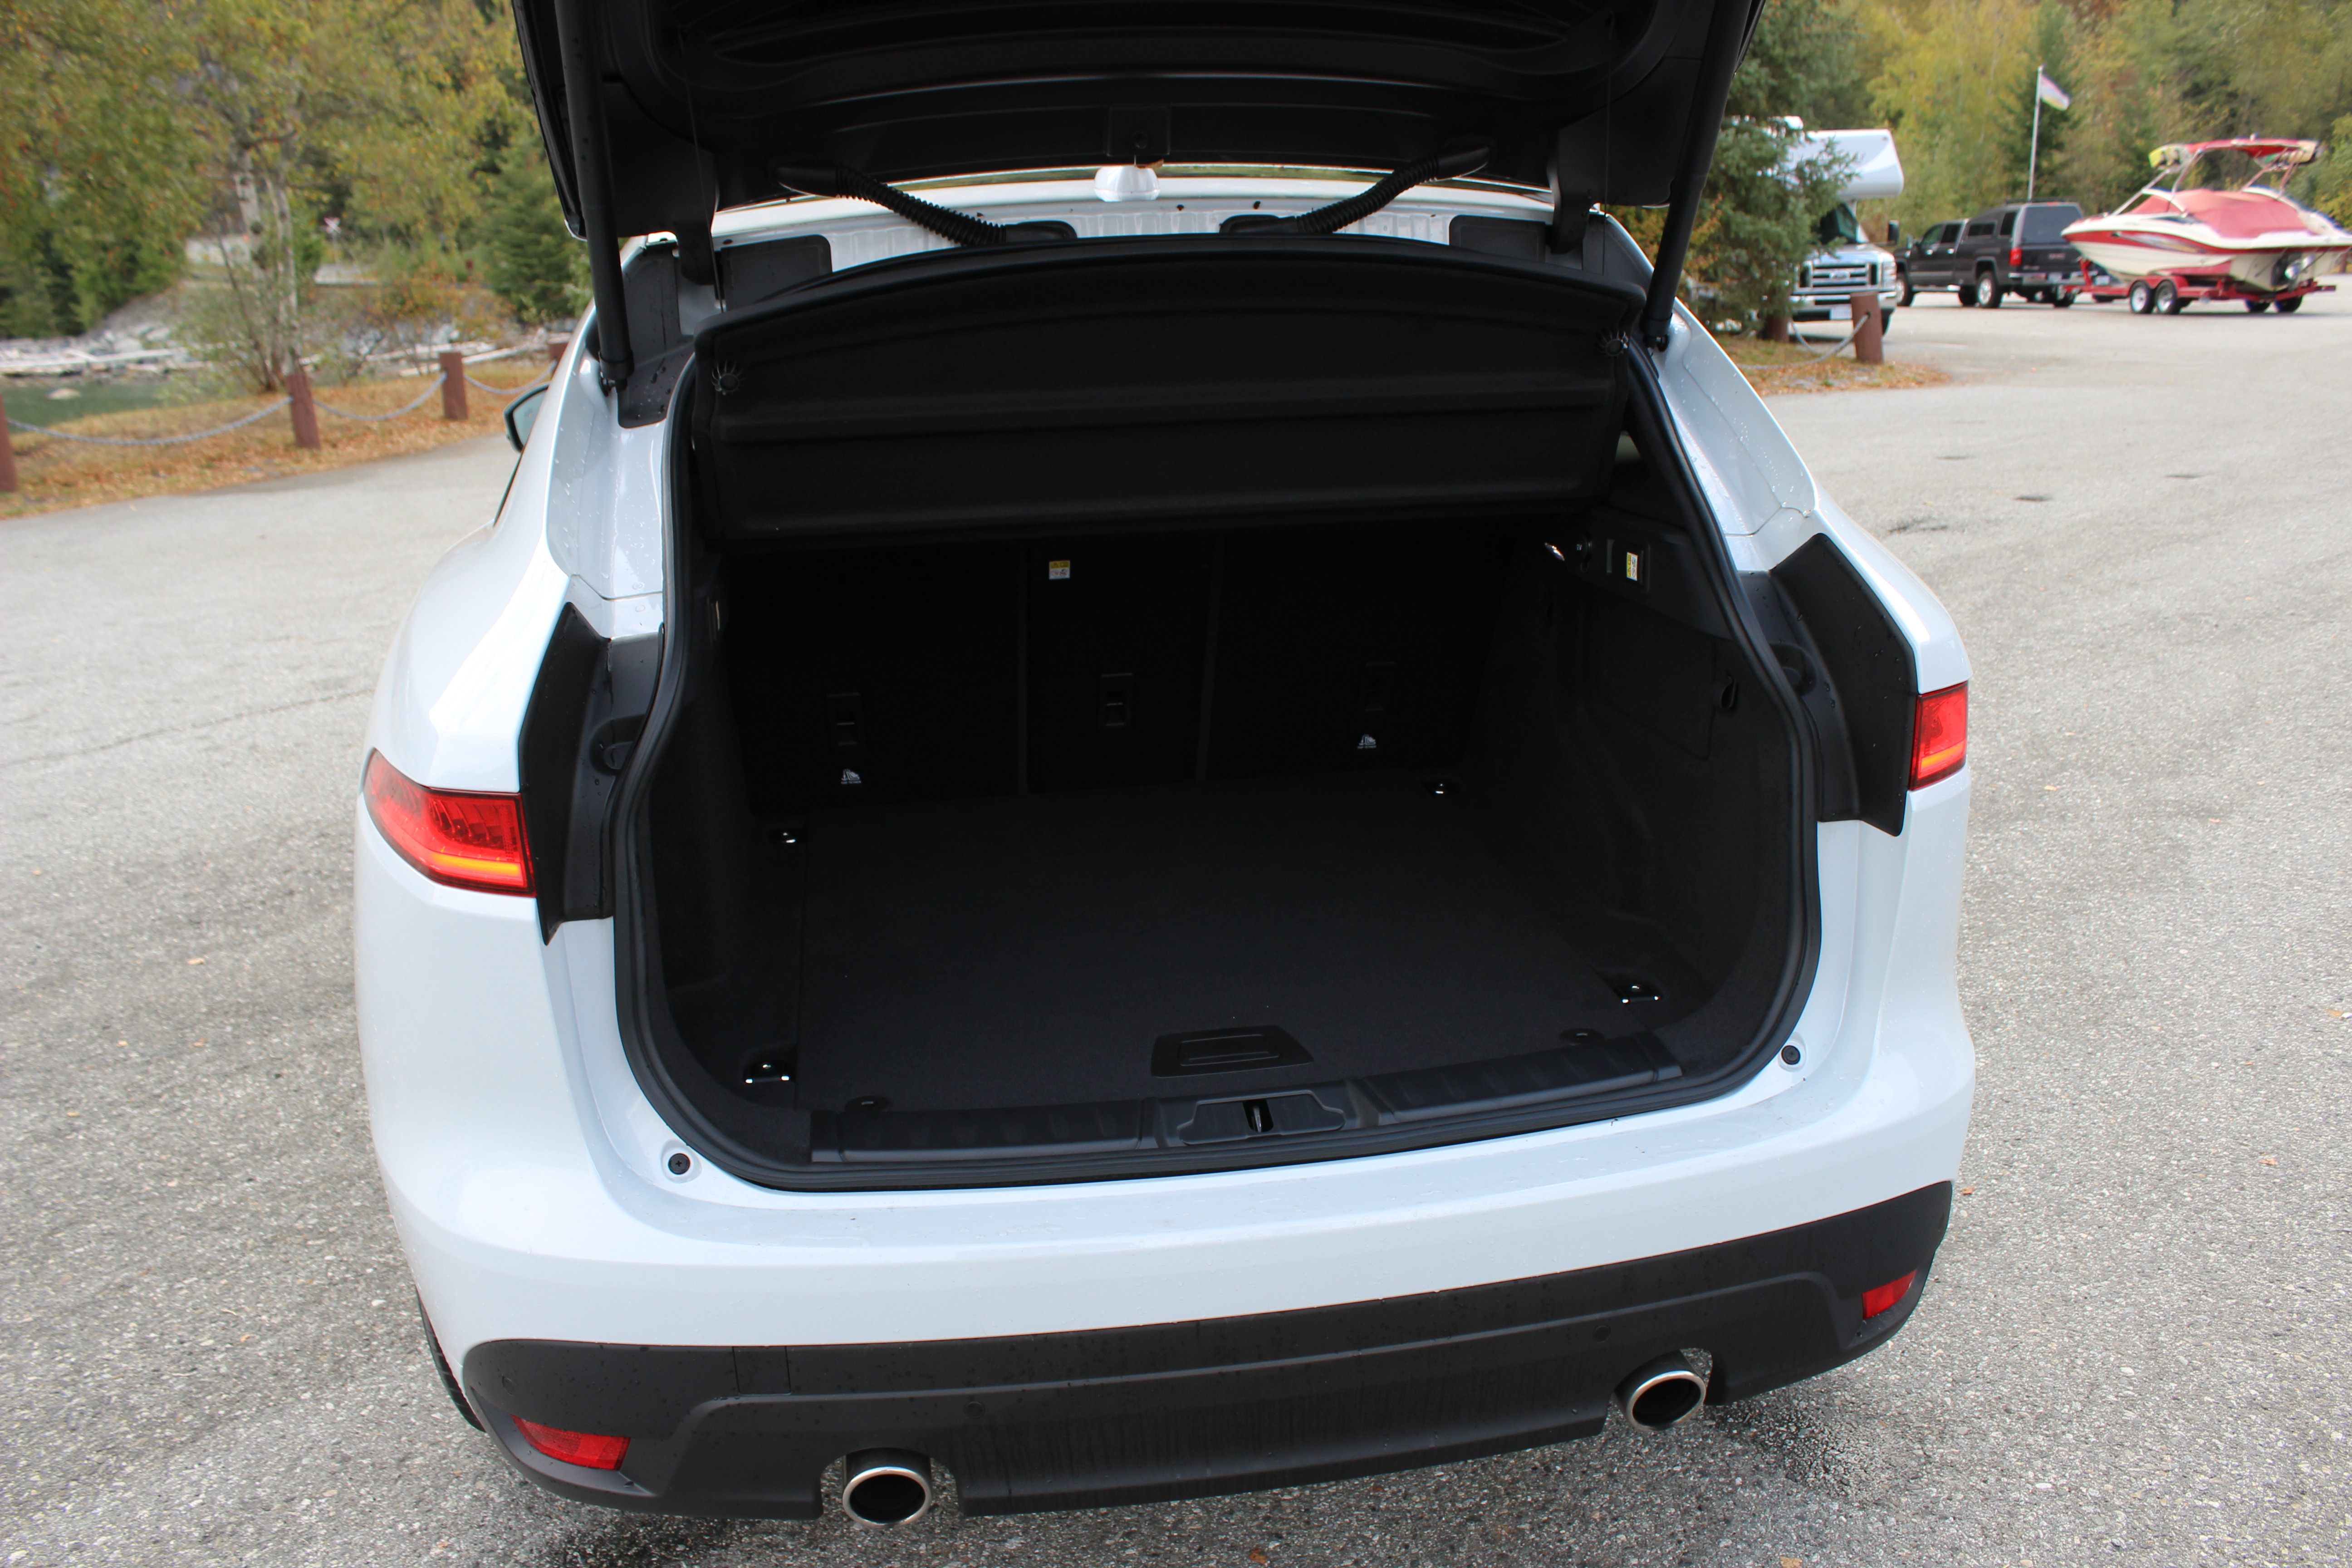 f-pace cargo